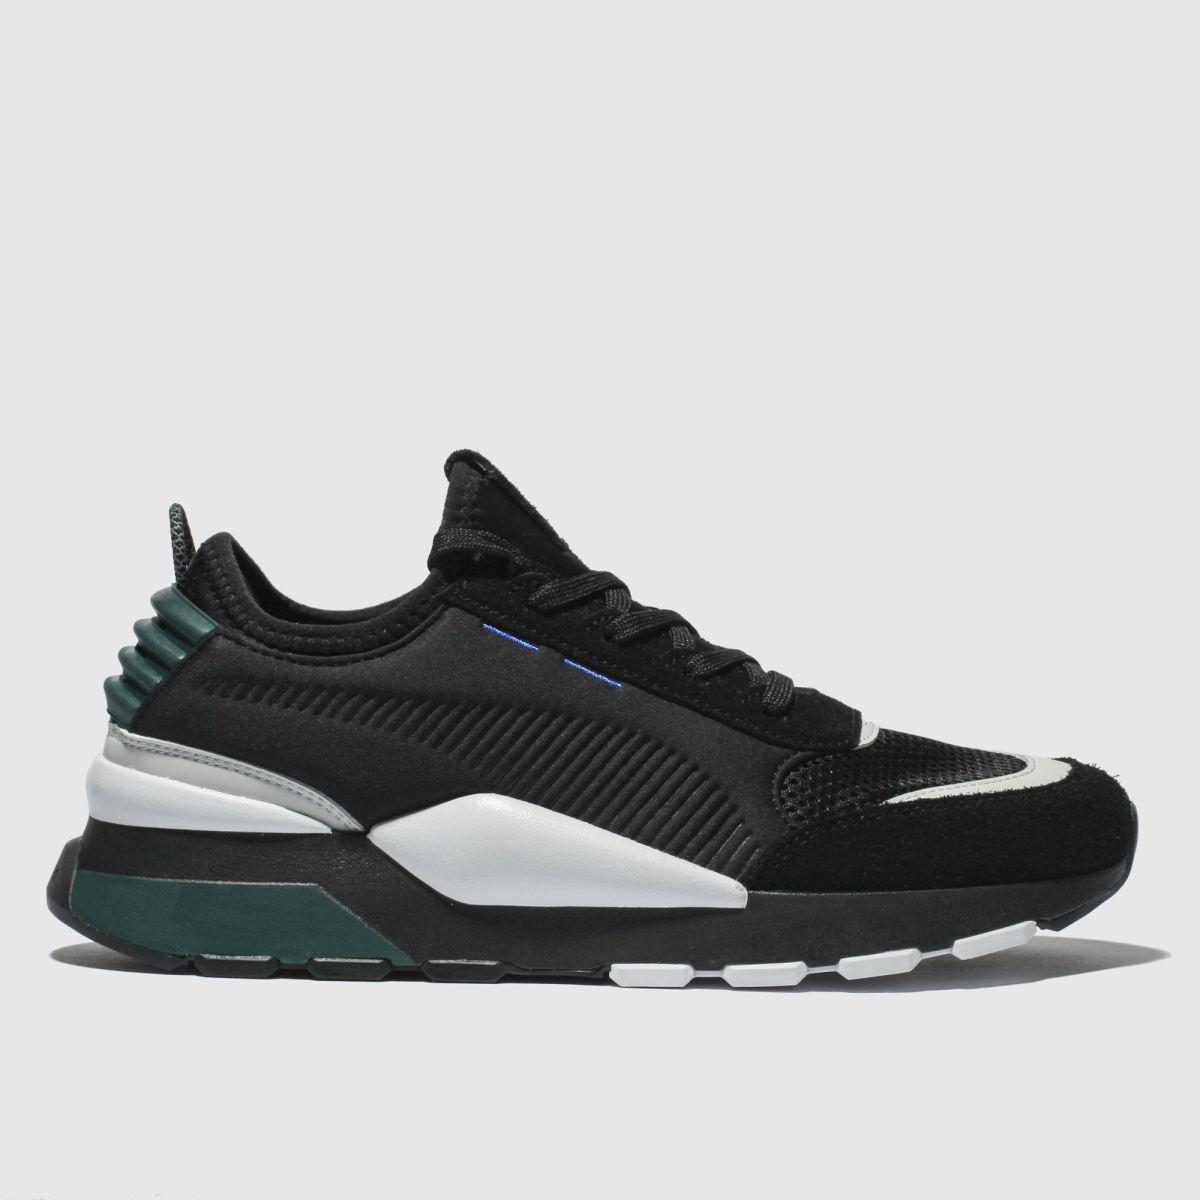 Puma Black & Green Rs-0 Winter Inj Toys Trainers